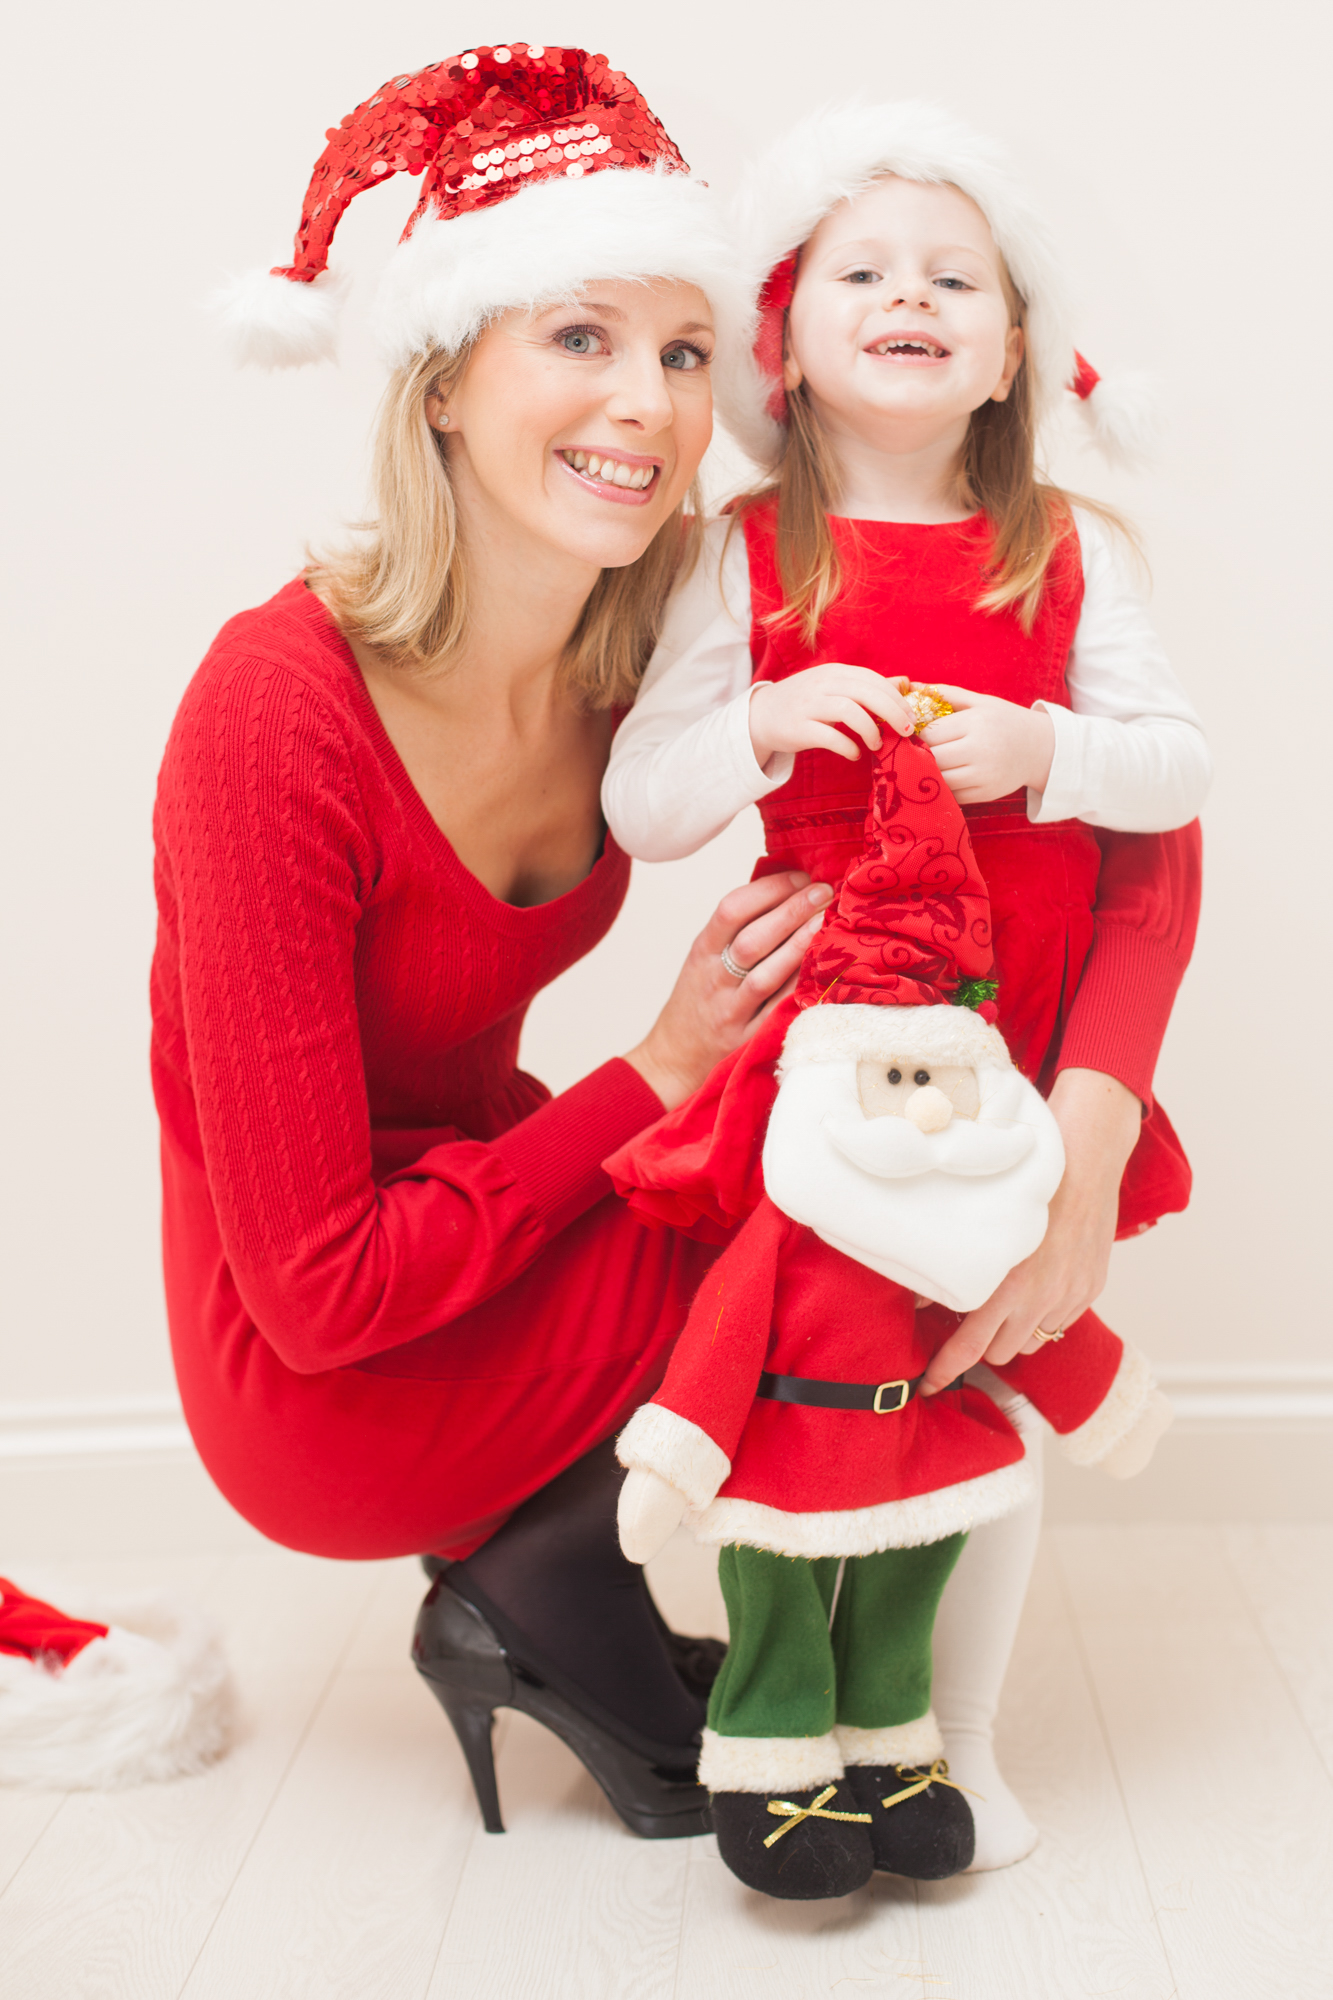 Mum-in-Residence Laura Haugh is pictured with daughter Lucy (3) who is giving her soother to Santa Claus this Christmas